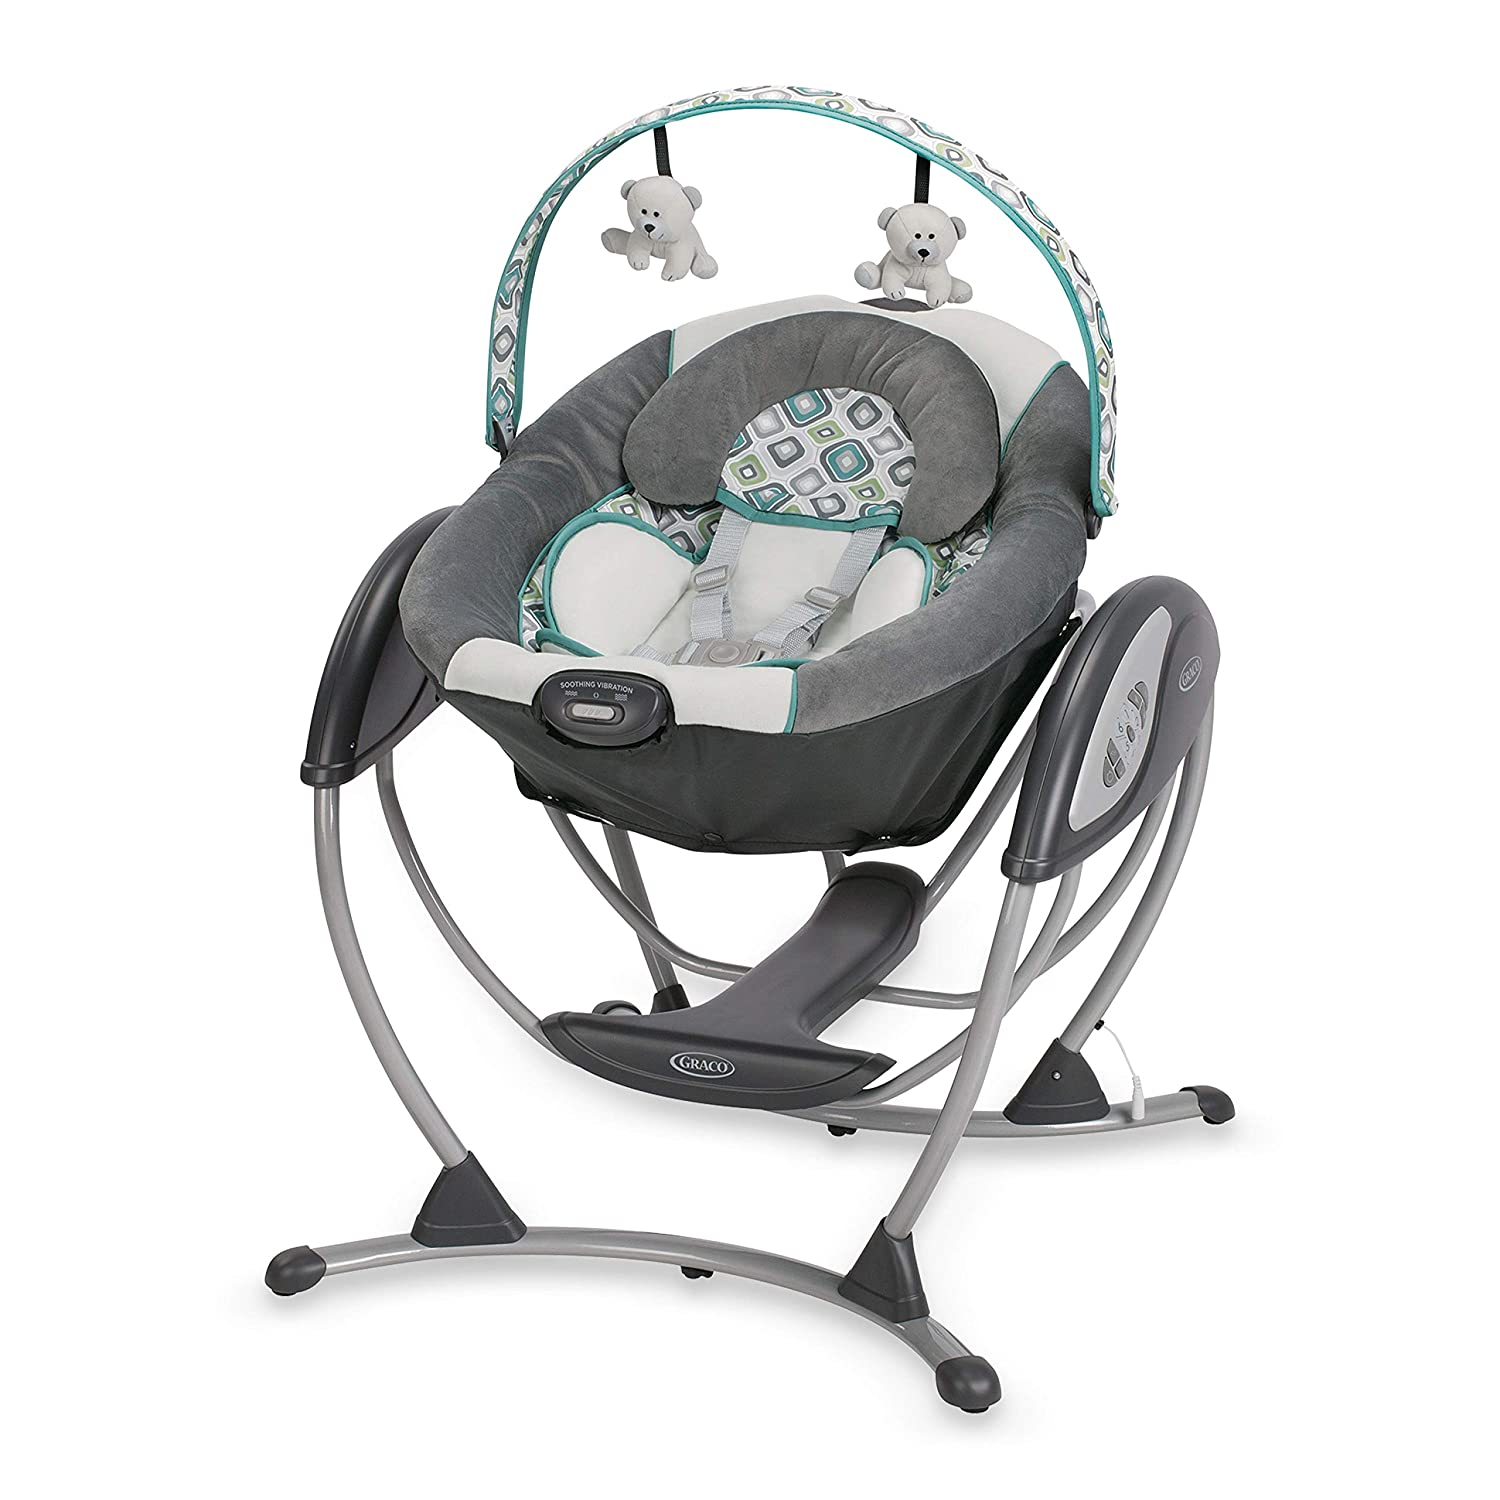 81rGP94pHfL. SL1500 10 of the Best Baby Swing for Big Heavy Babies 2021 Review